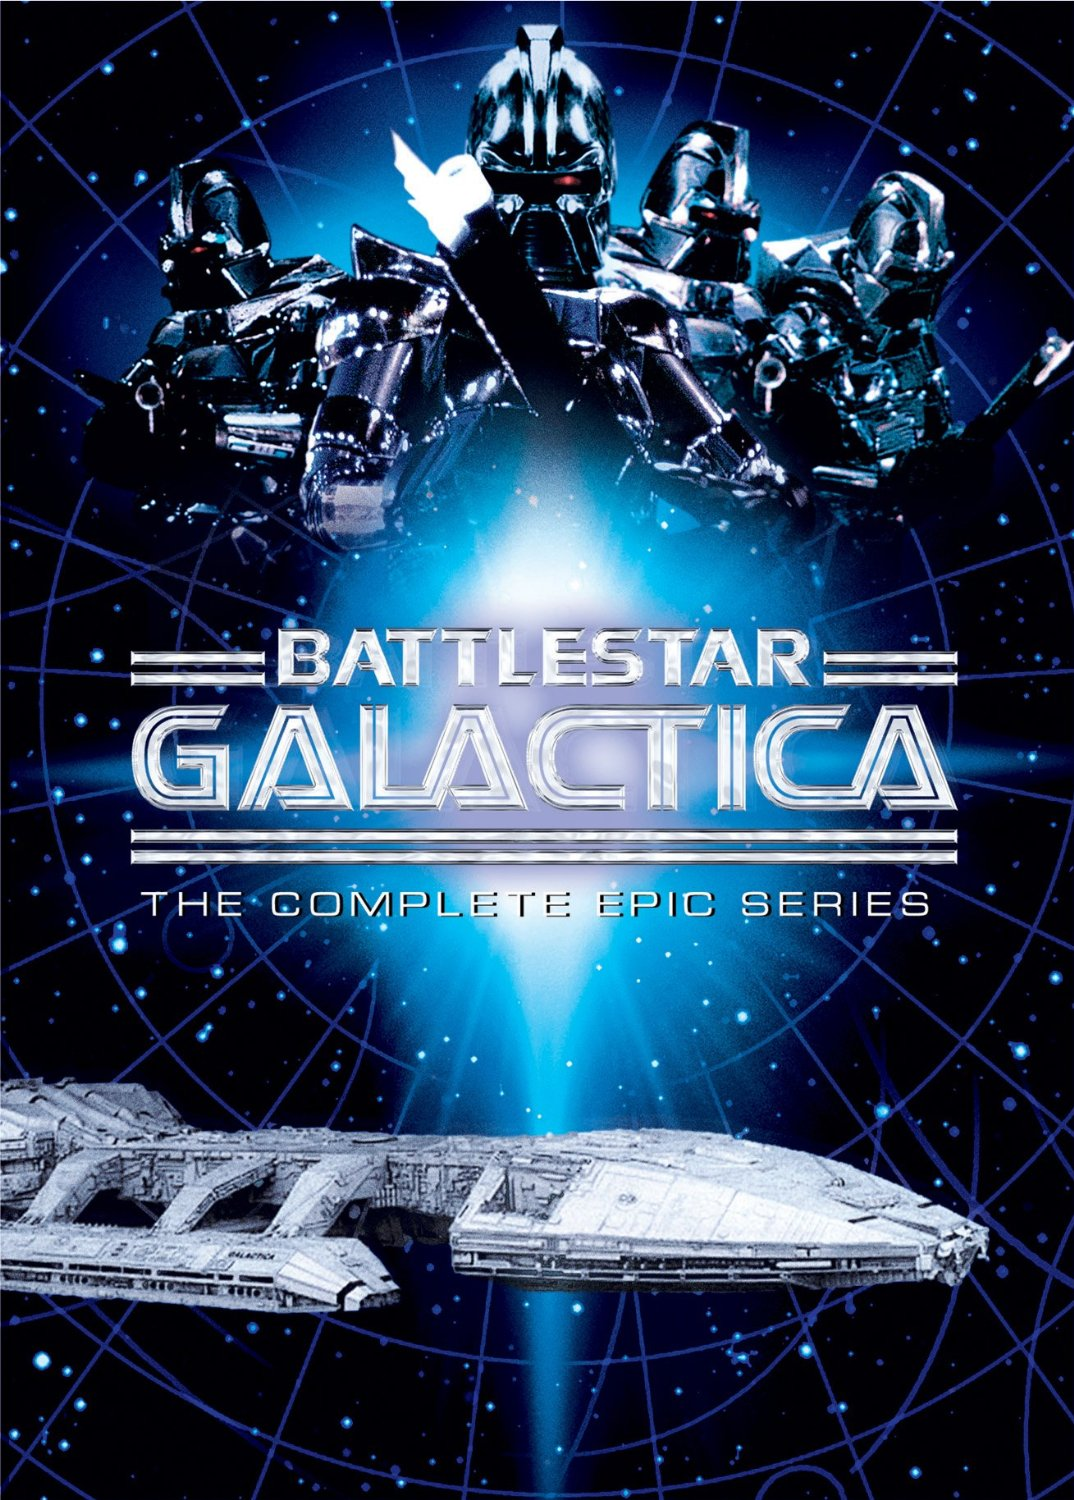 Galactica original movie